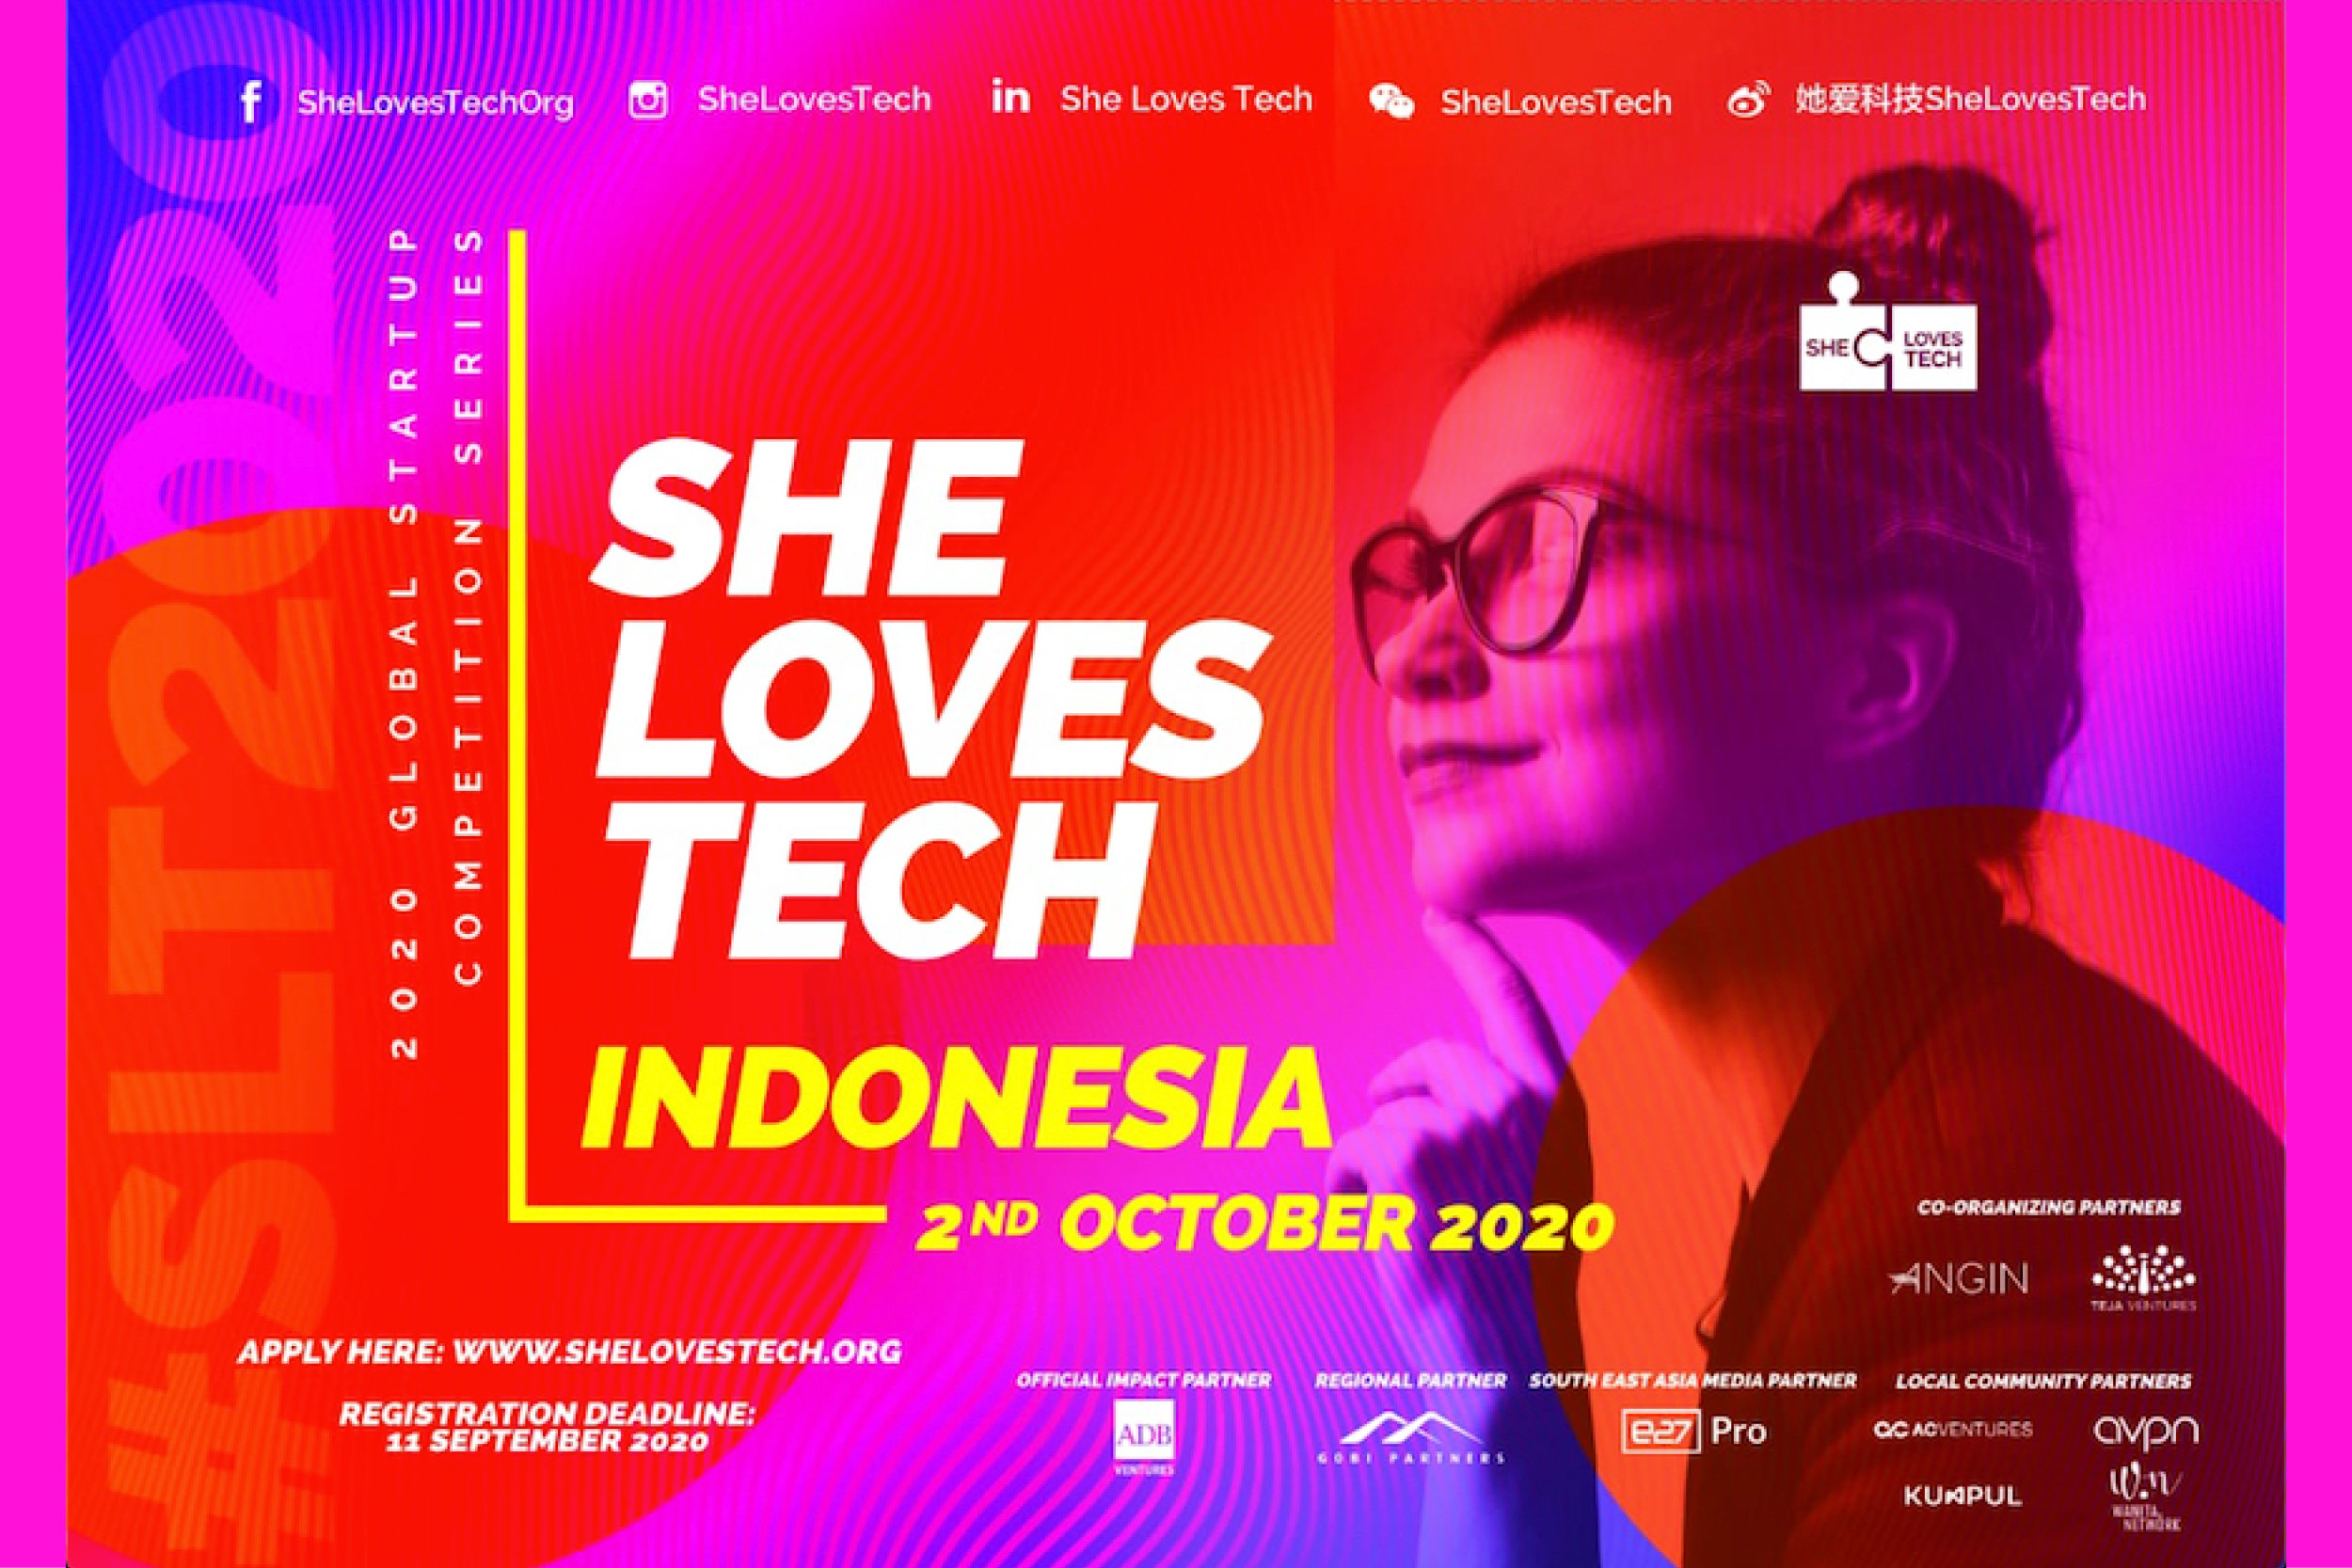 Bawa Bisnis Start-up Anda Mendunia Lewat Kompetisi She Loves Tech